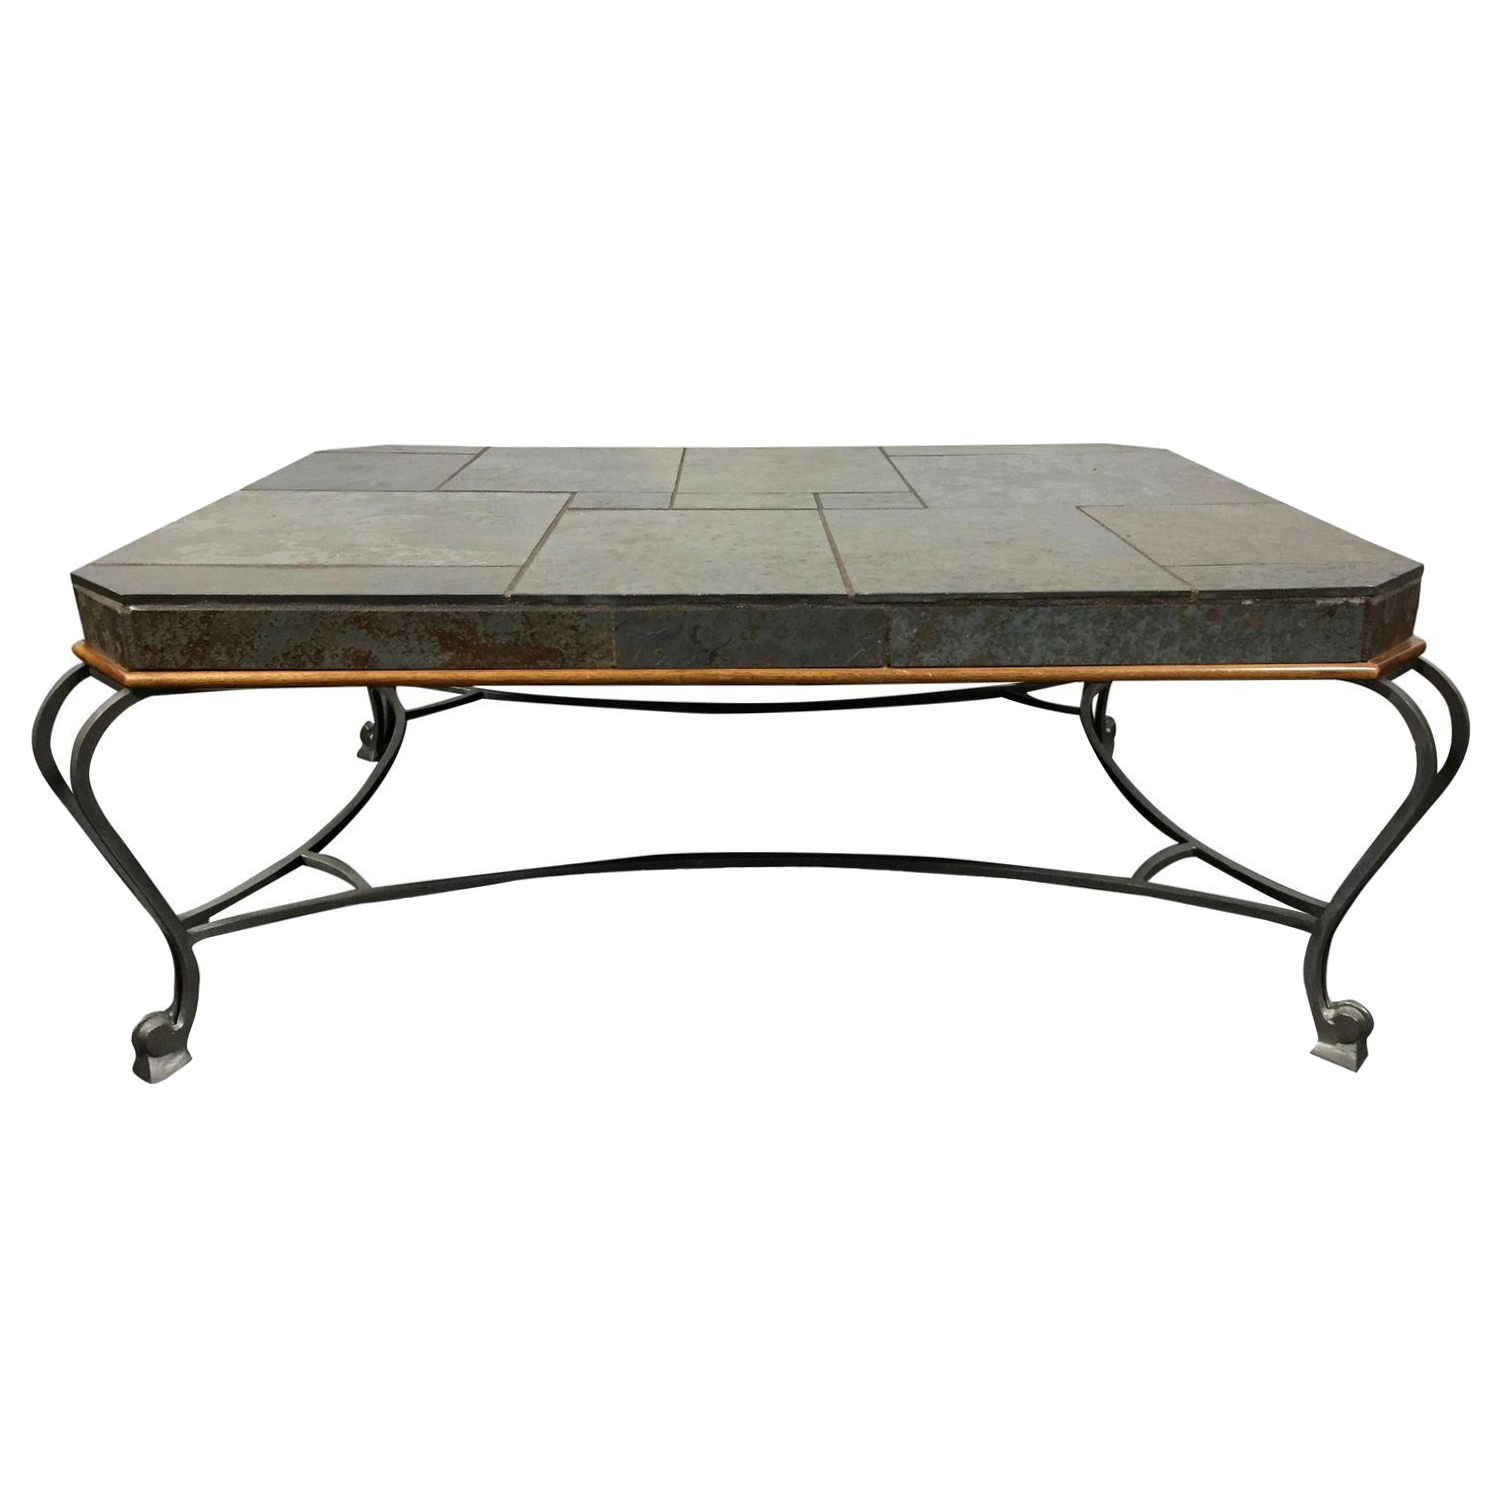 Drexel Heritage Et Cetera Slate Metal Coffee Table